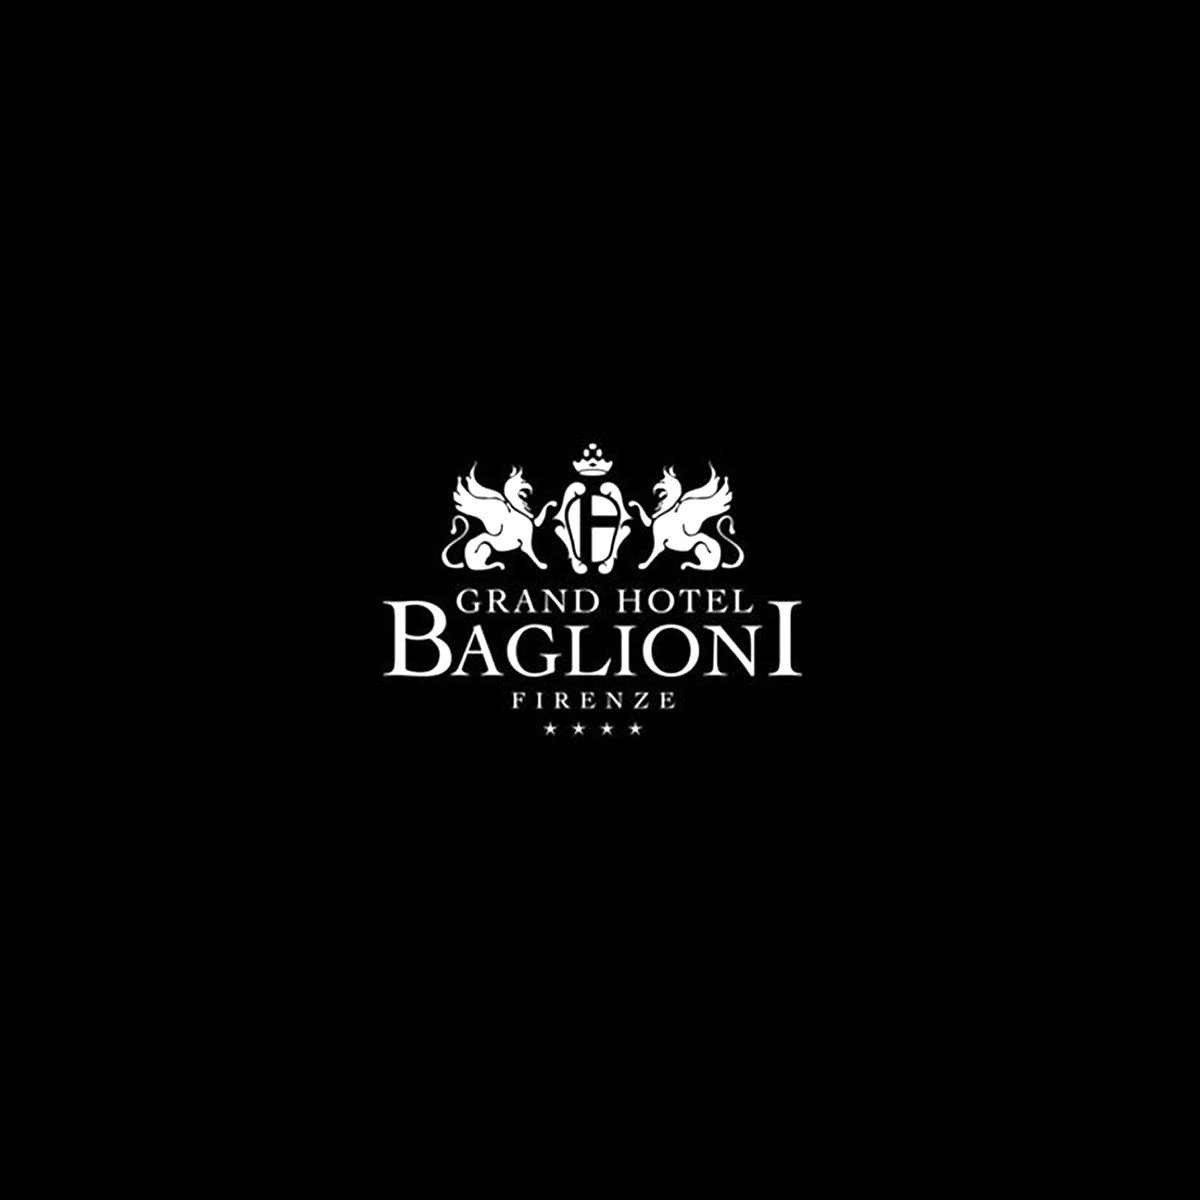 barbatimoda_fiere-grand-hotel-baglioni